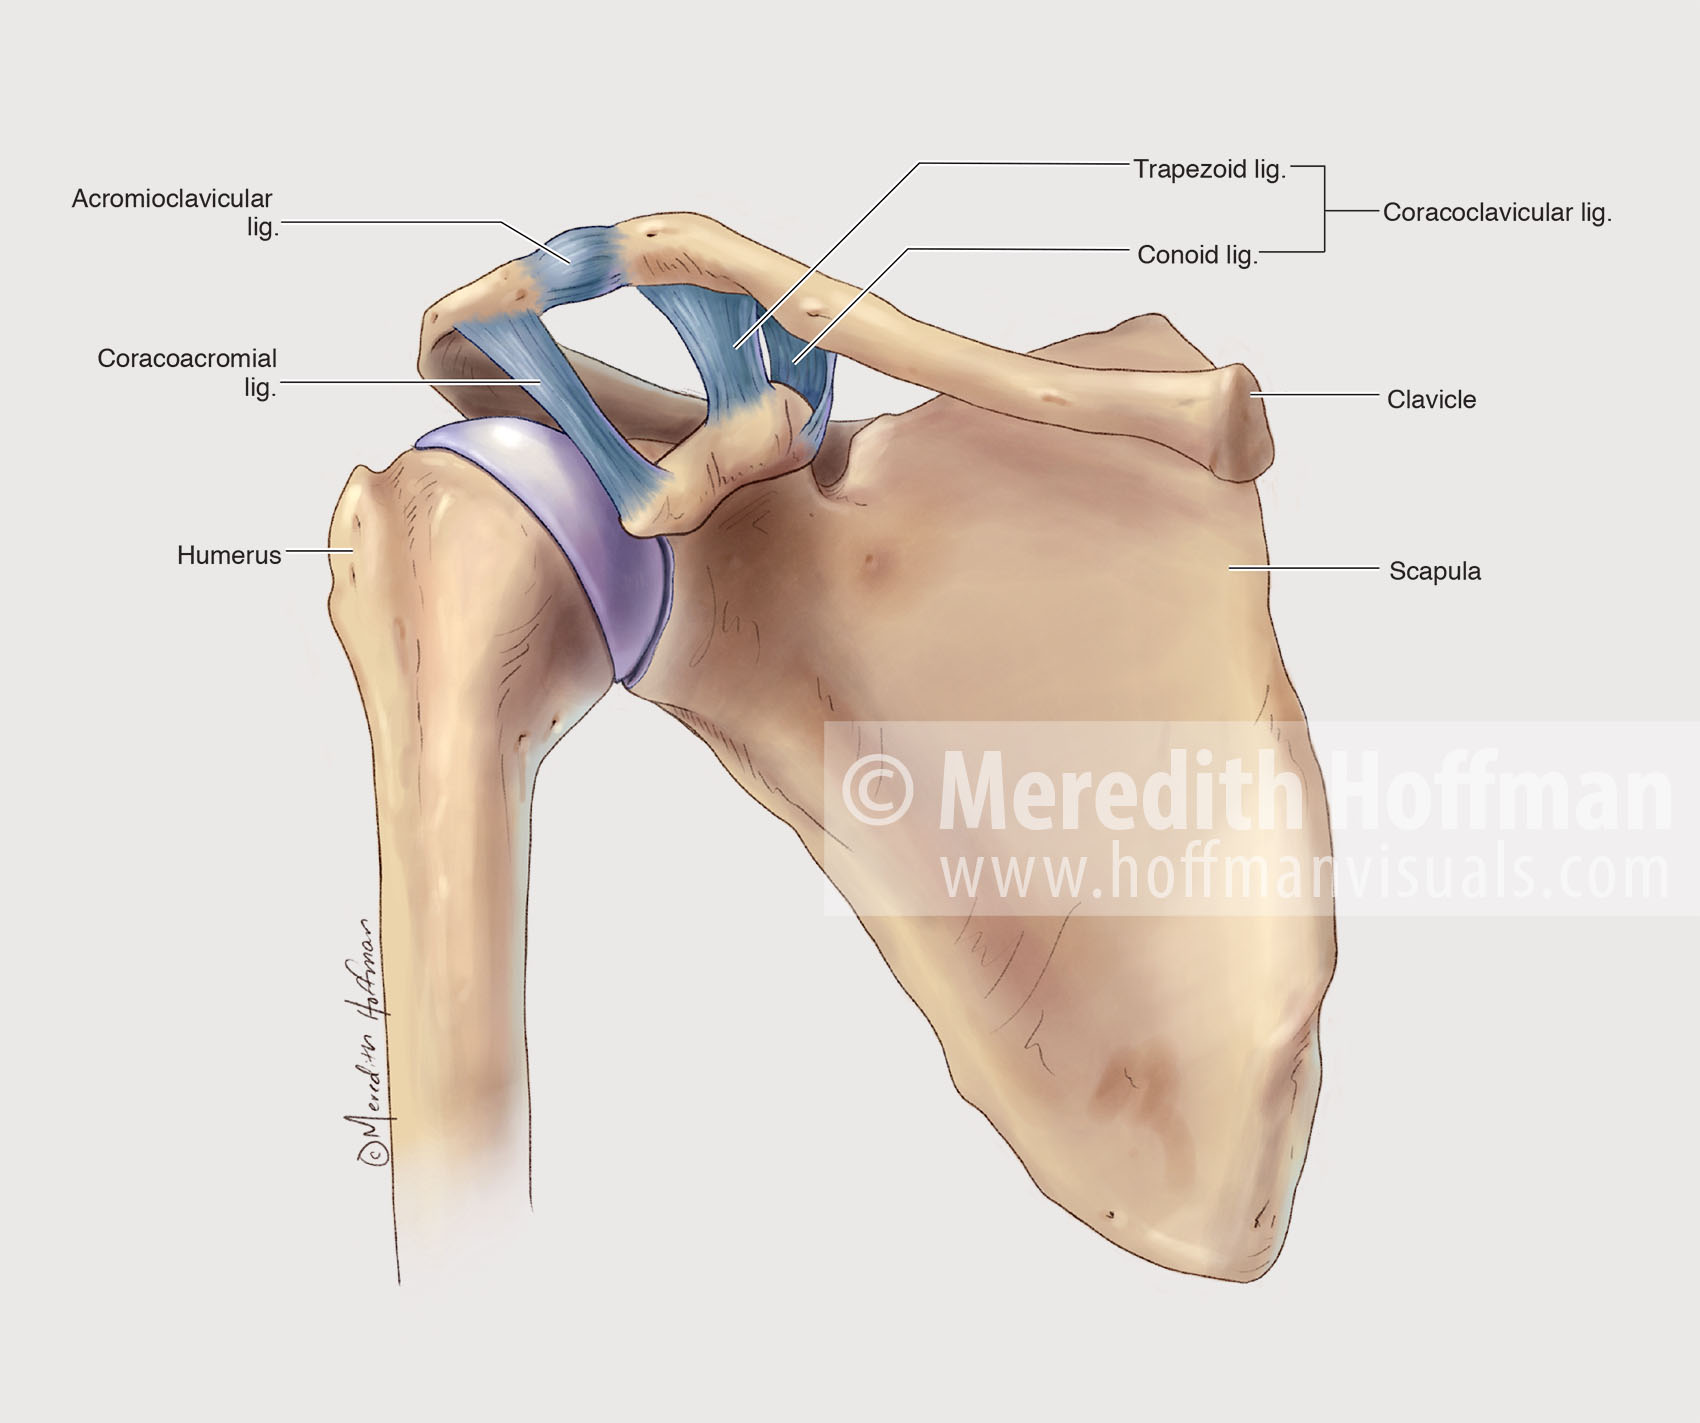 Anatomy of the shoulder and its ligaments